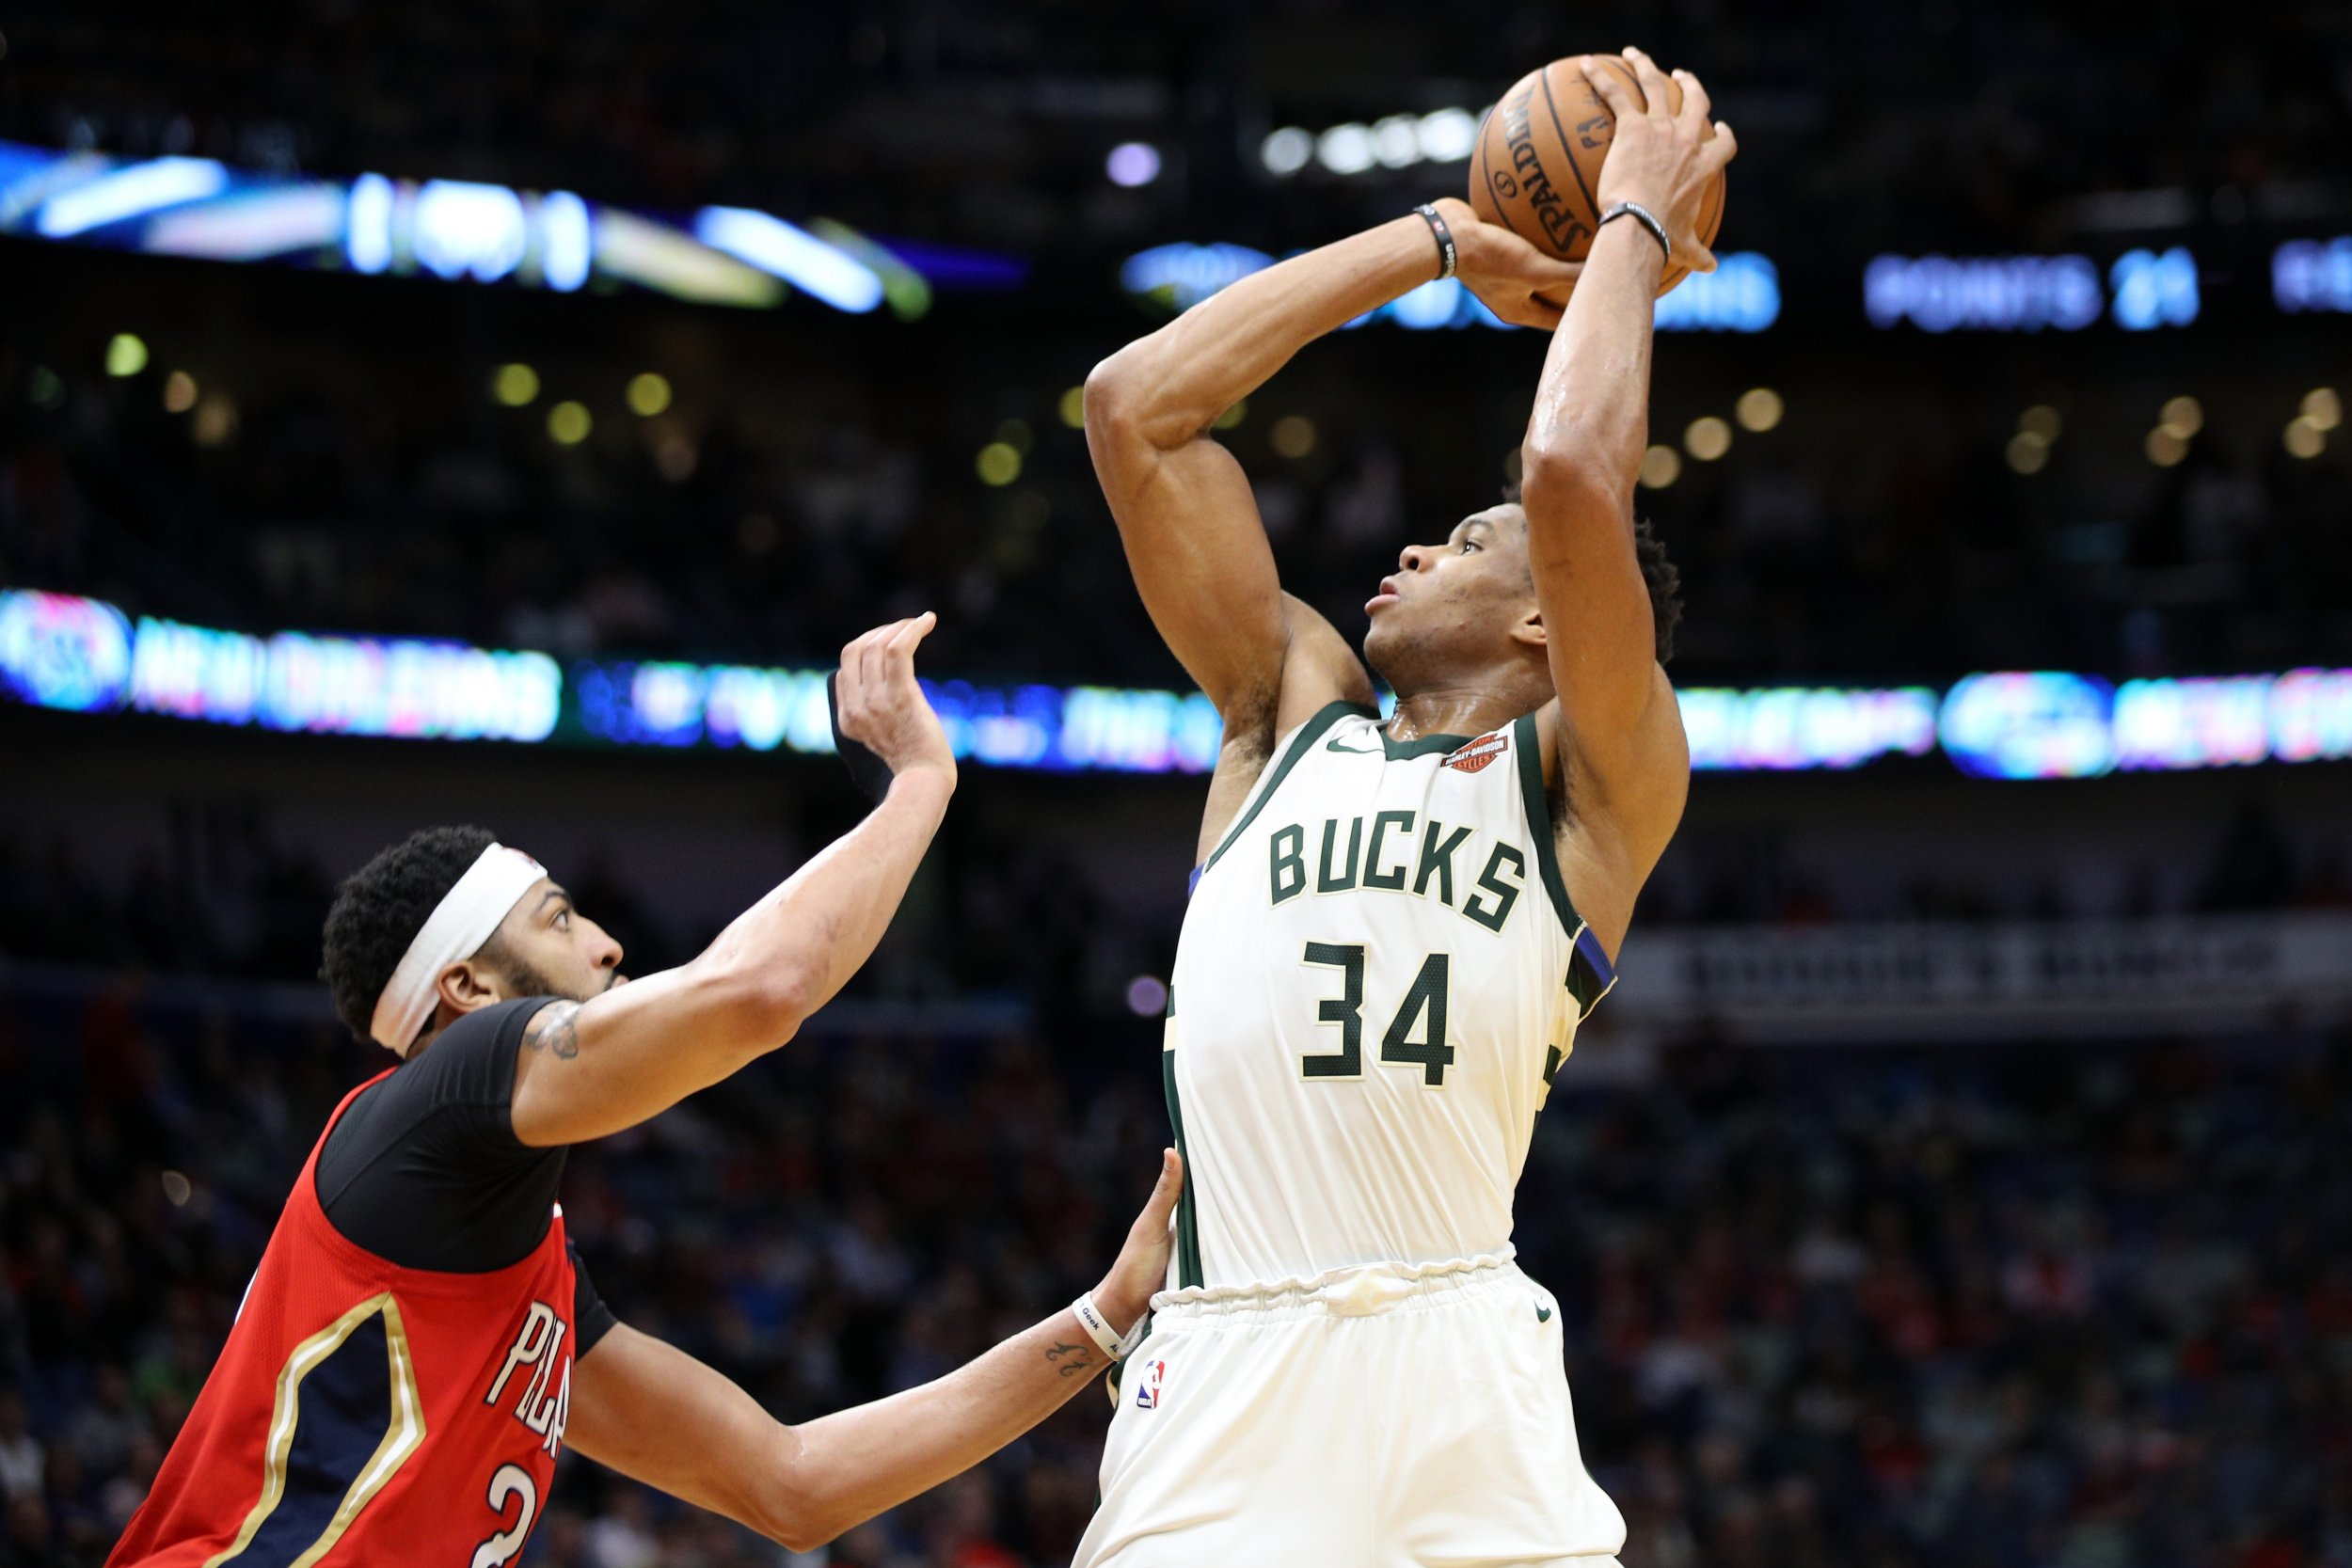 Giannis Antetokounmpo of the Milwaukee Bucks shoots the ball over Anthony Davis at Smoothie King Center, New Orleans, Louisiana, December 13 2017.